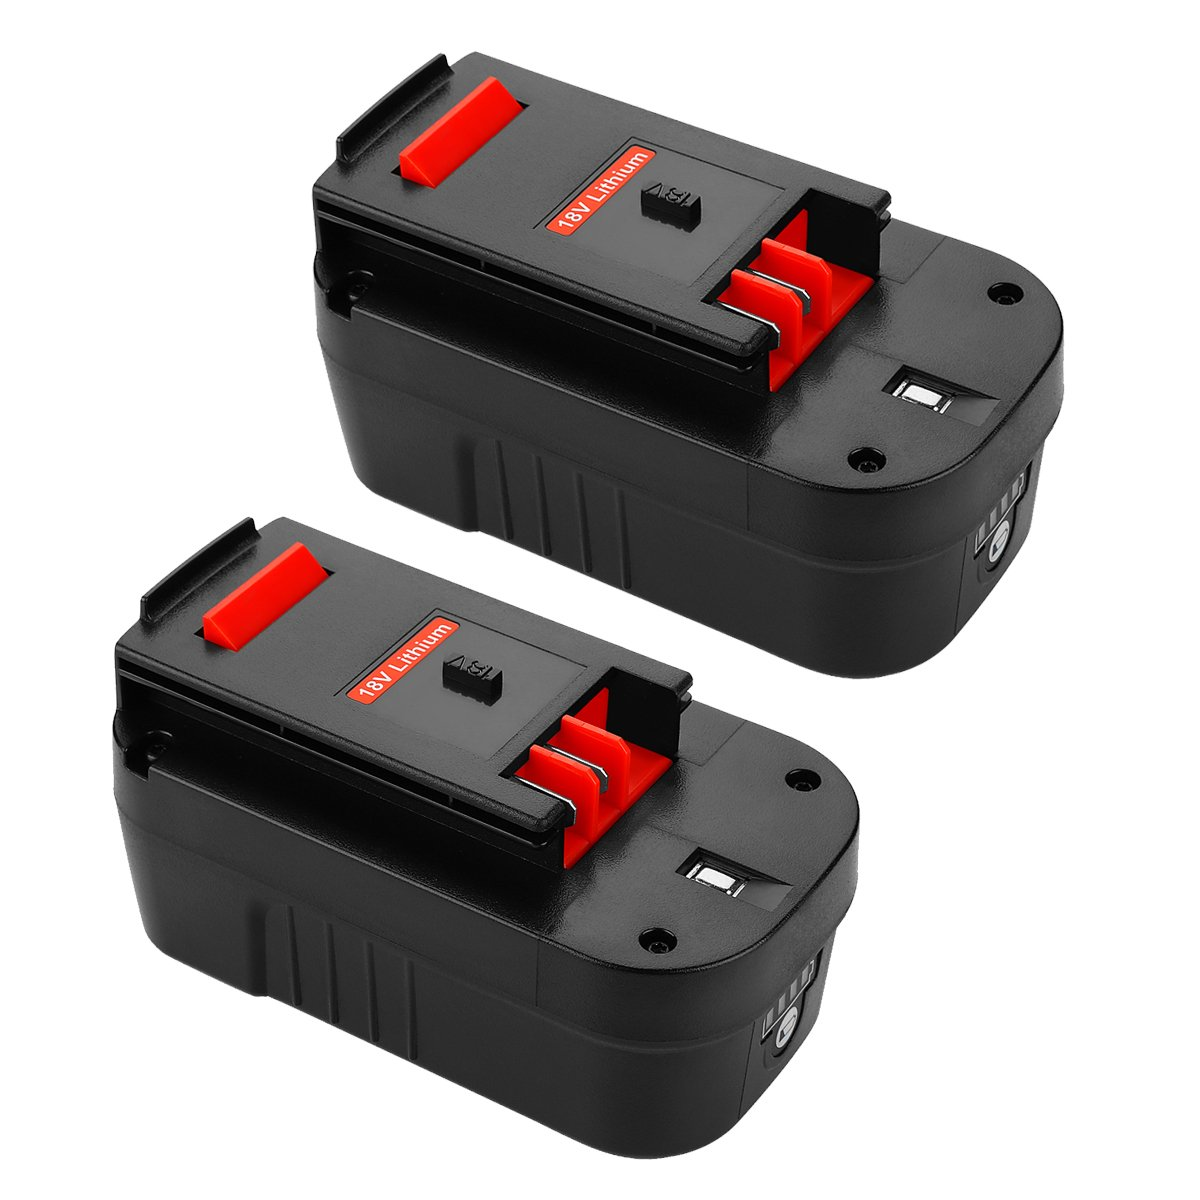 ANTRobut Replacement for Lithium-ion 3000mAh 18V Battery for black & decker 18V battery HPB18 HPB18-OPE 244760-00 A1718 FS18FL FSB18 Firestorm Black and Decker 18 Volt Batteries (2 Pack) by ANTRobut